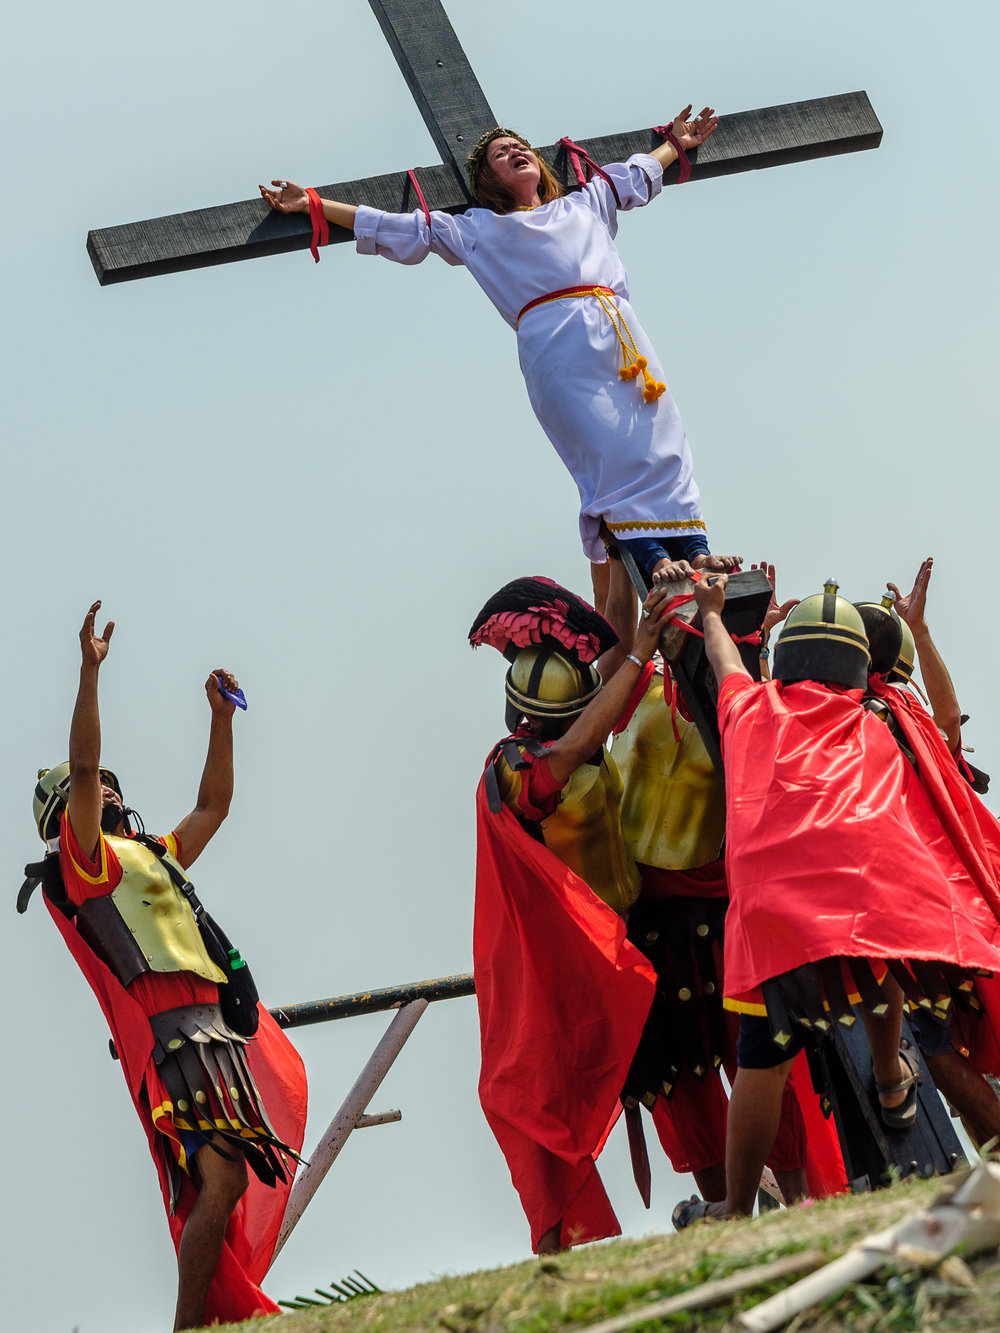 One lady was amongst the Catholic devotees to be crucified with real nails through her hands.